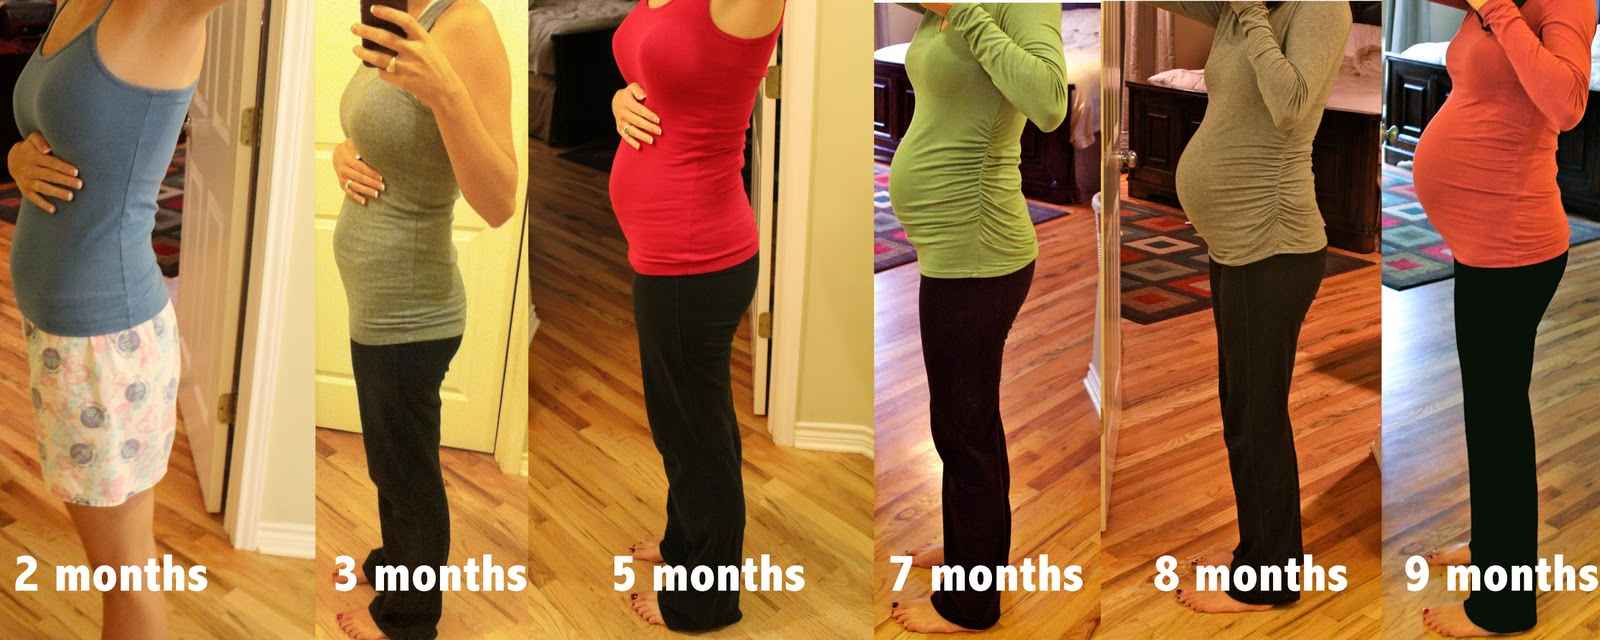 4 Month Pregnant Stomach on oscar printable ballot 1 page